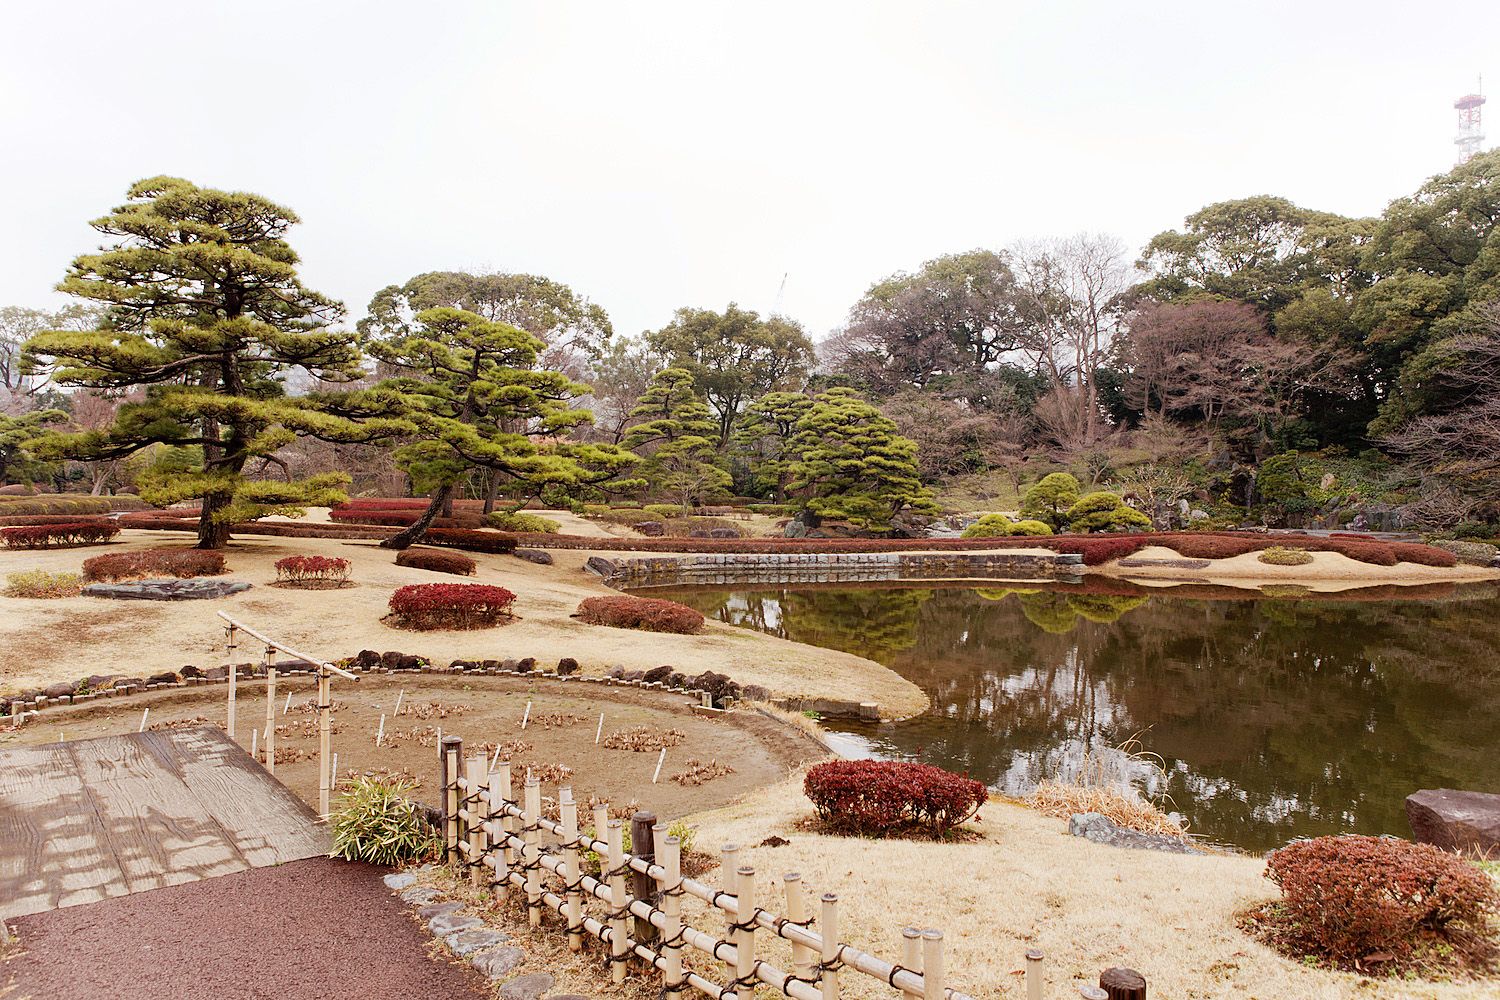 The Golden Bun's Guide to TOKIO | The East Gardens of the Imperial Palace 48 hours in Tokio www.thegoldenbun.com